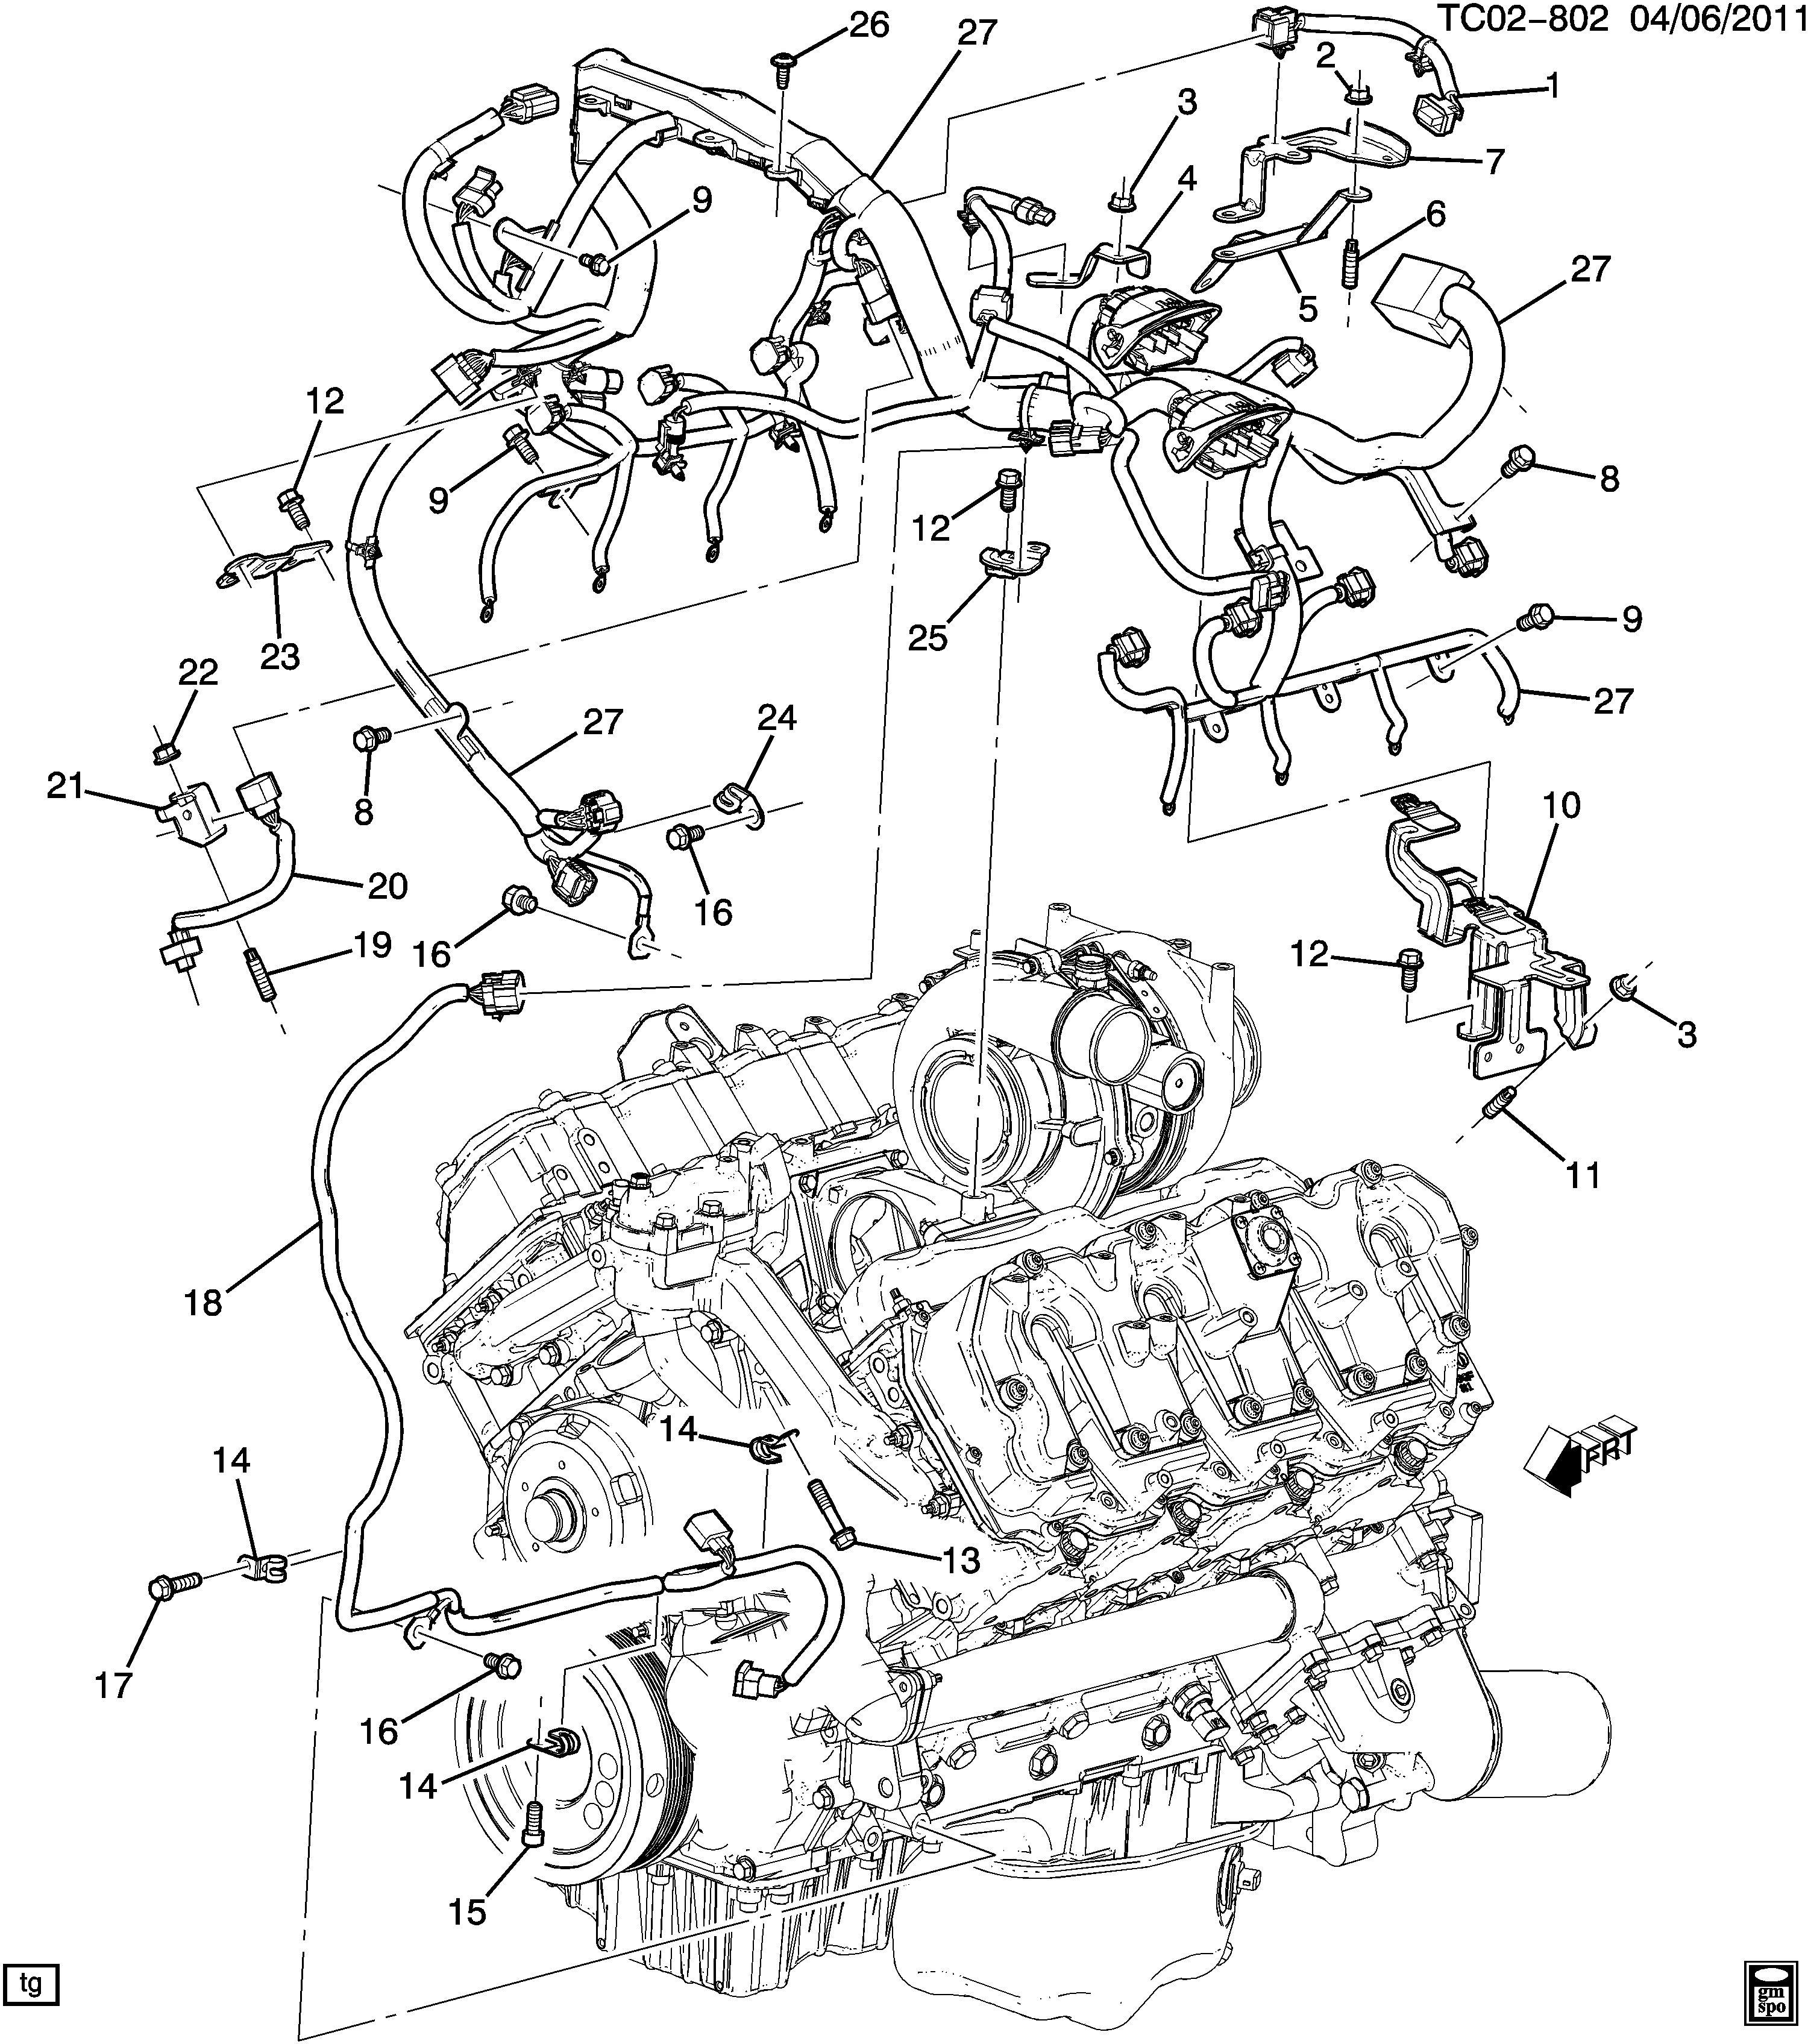 12629647 - GM Harness. Engine wiring. Wrgeng, conjuction ...